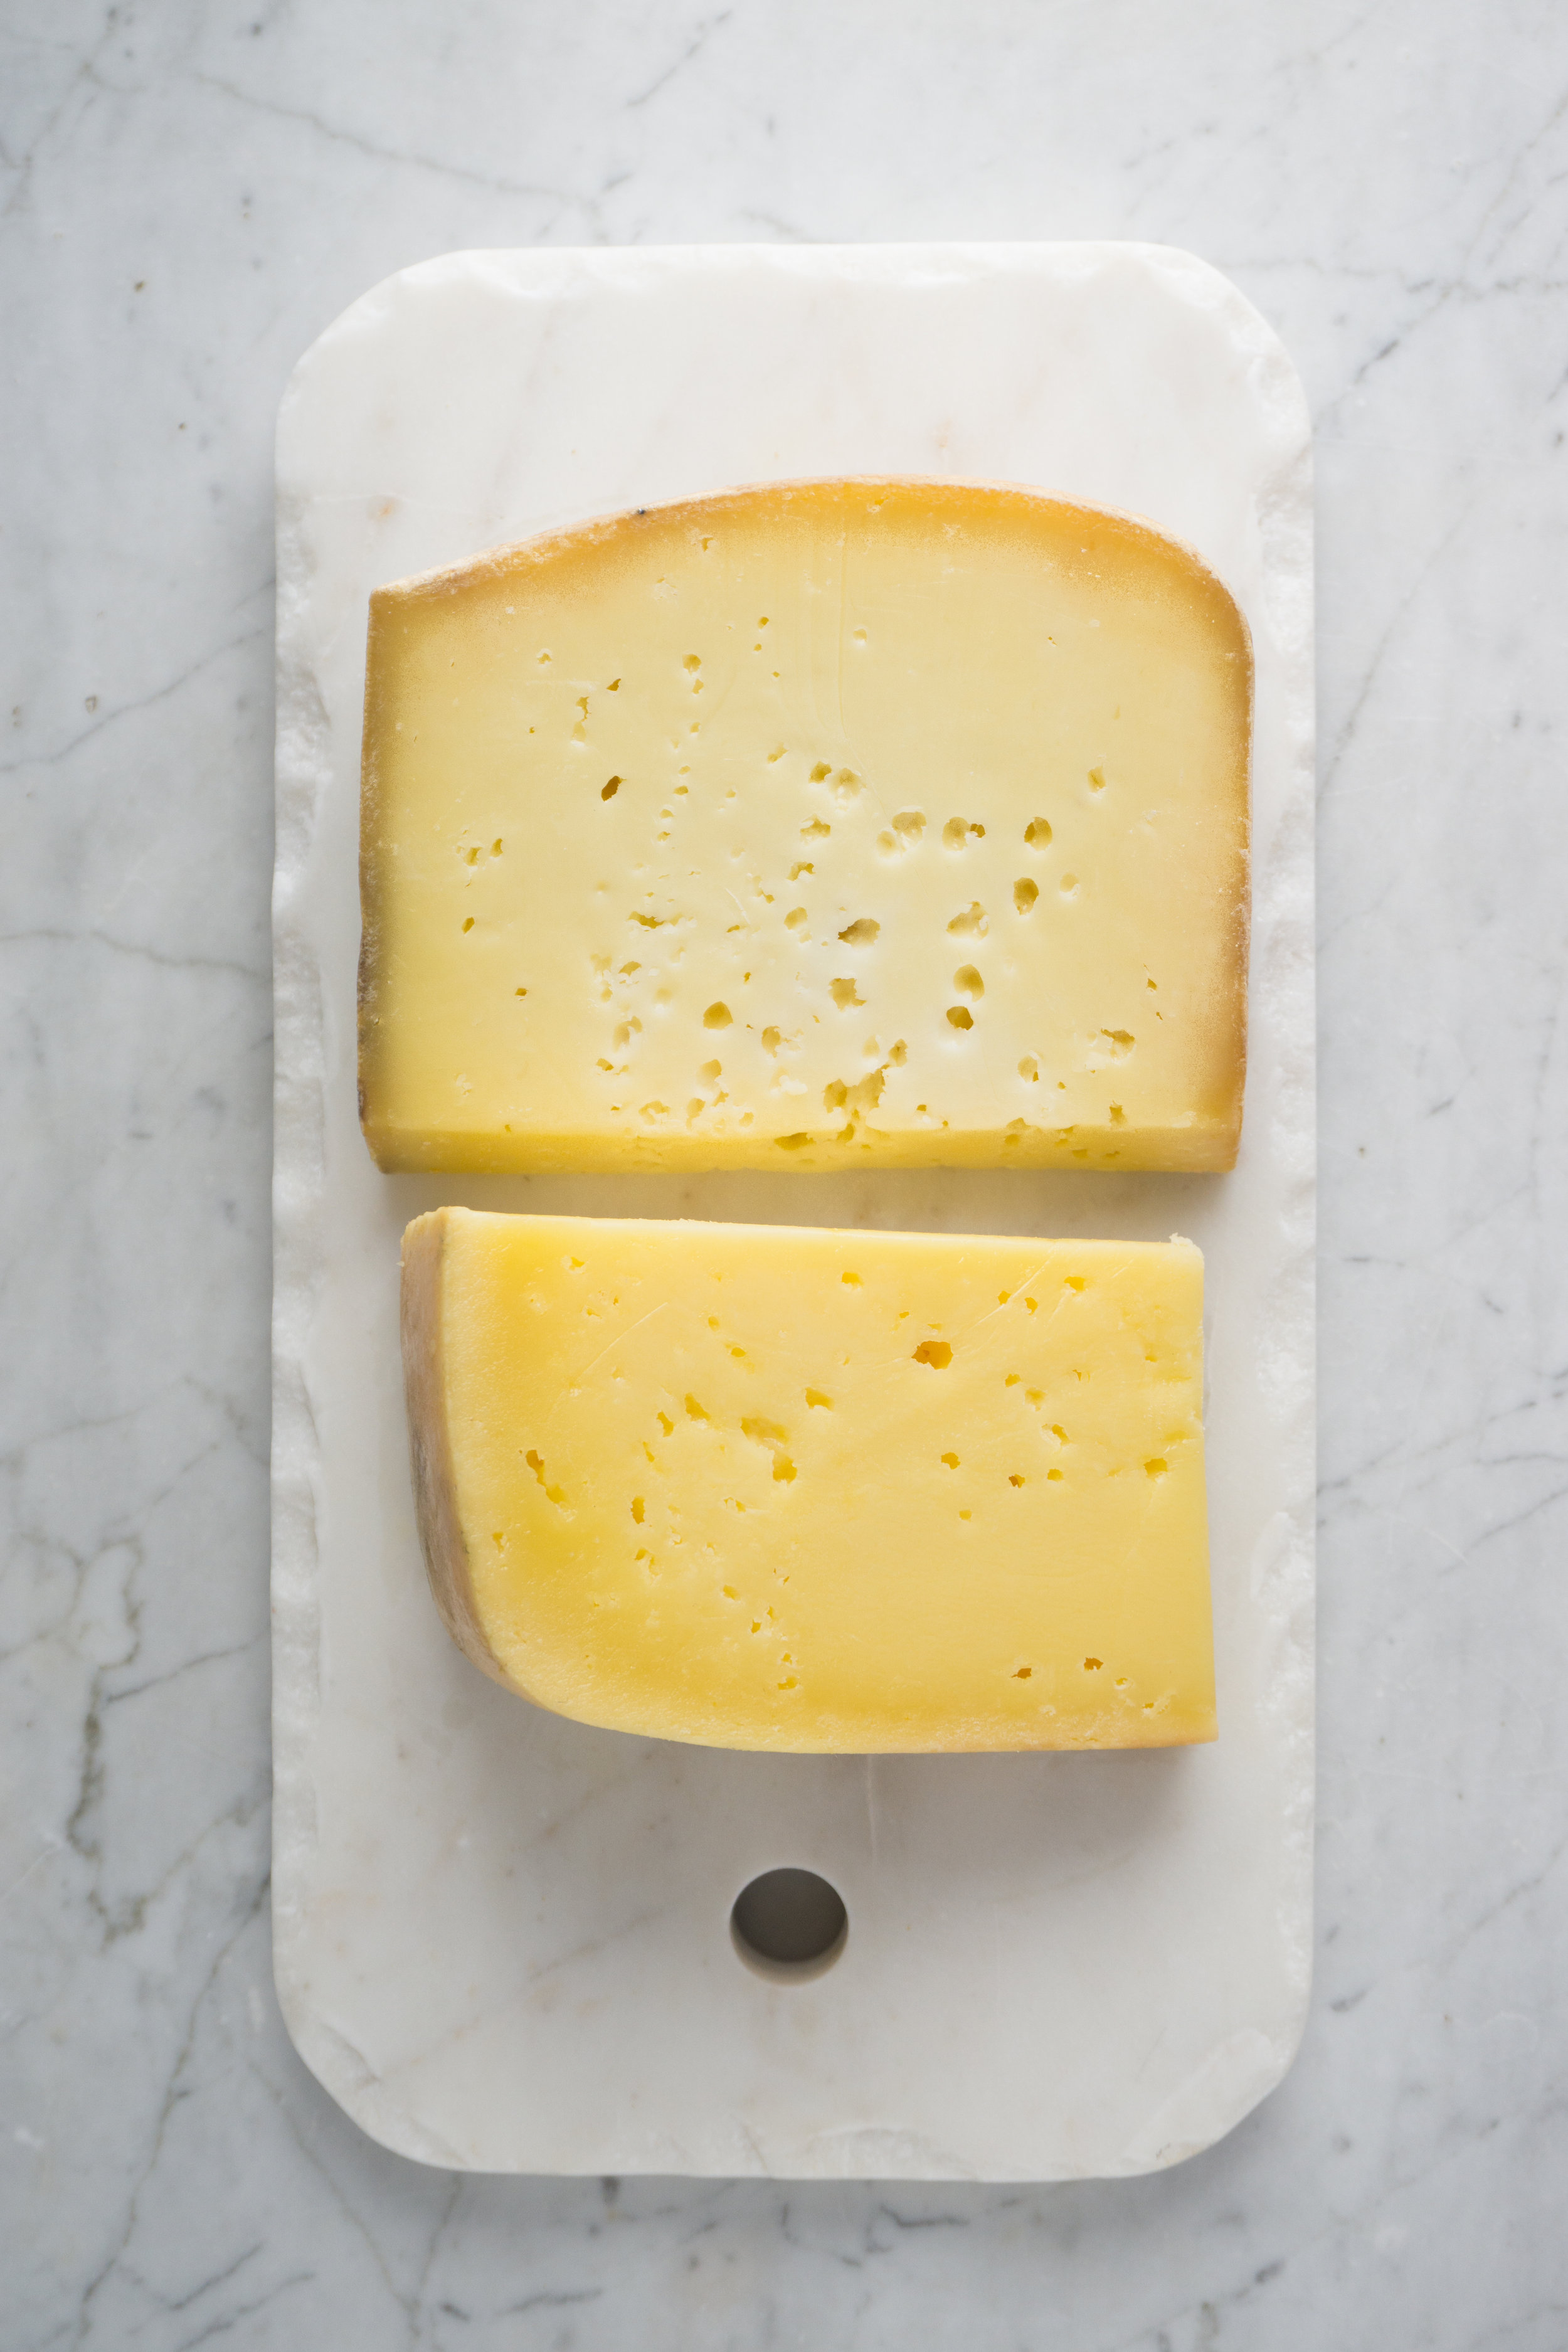 Seasonal changes, what cows eat and pasteurization create subtle changes in milk and therefore the color of cheese. Above:  Appleton Farms Pinnacle  (winter, pasteurized milk, lighter color), below:  Robinson Farm's Robinson Family Swiss  (summer, raw-milk, more yellow/orange from the pigments in the fresh grasses).